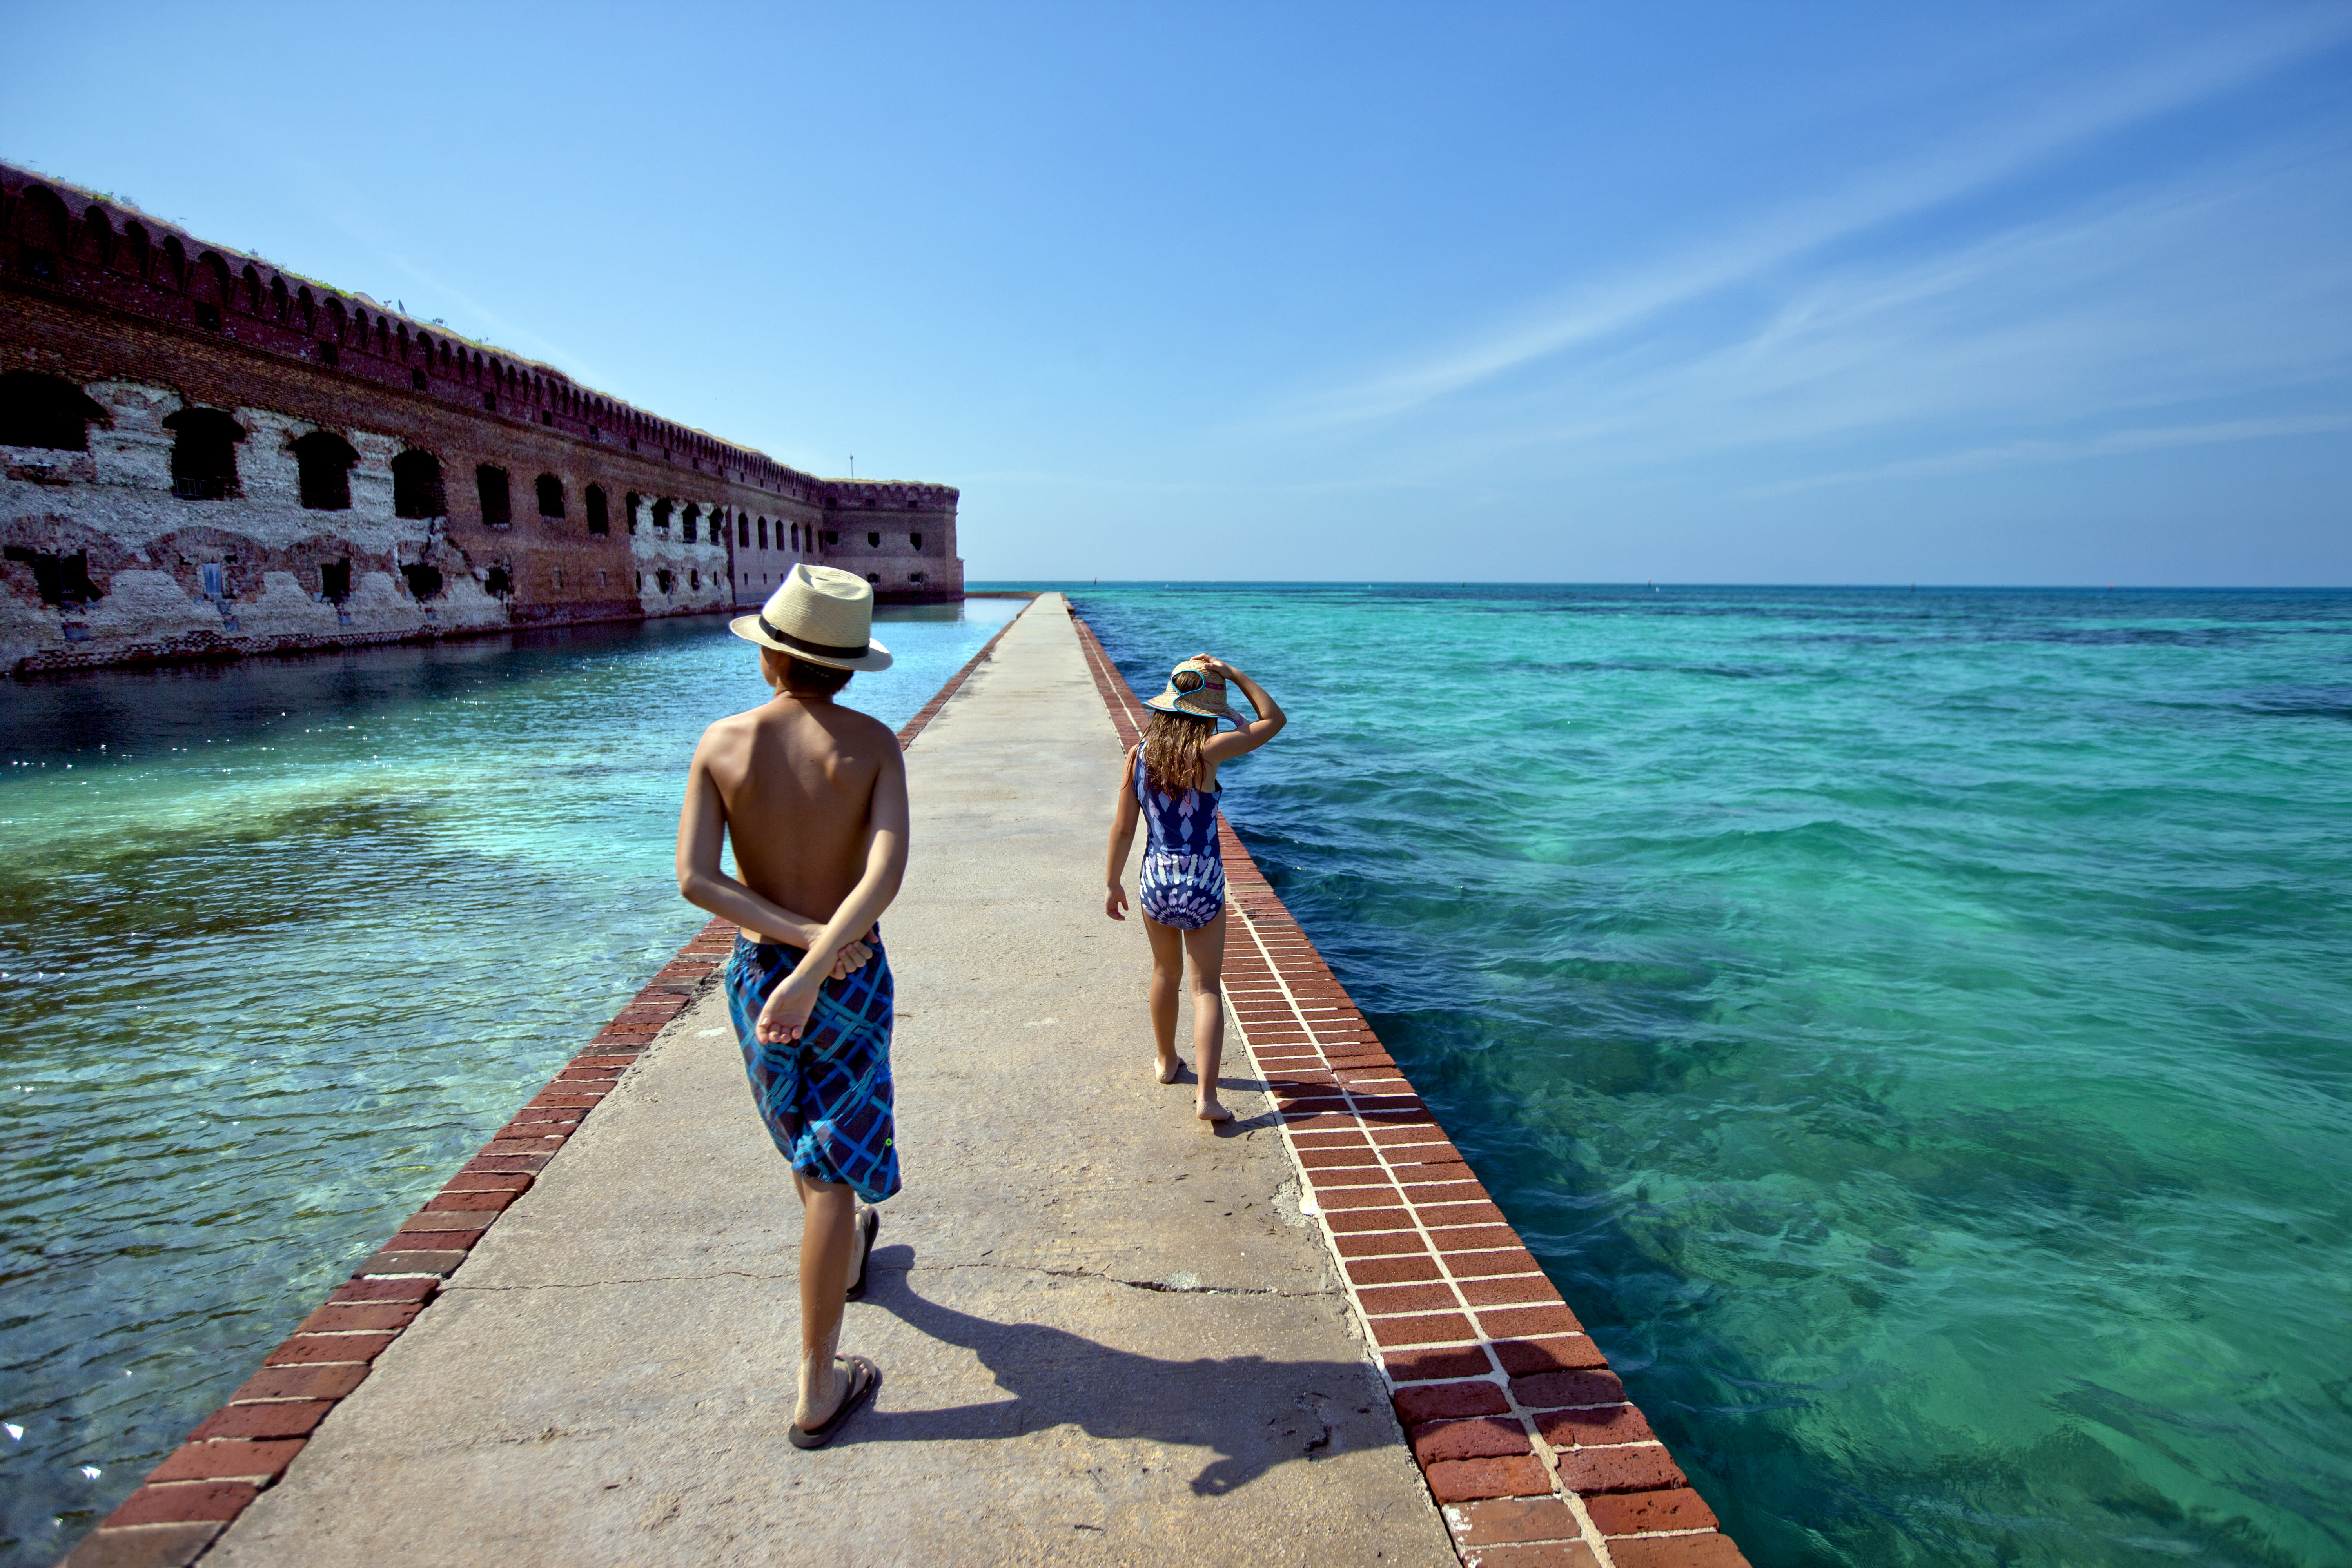 Two children walking down a path surrounded by water at Fort Jefferson in Dry Tortugas National Park